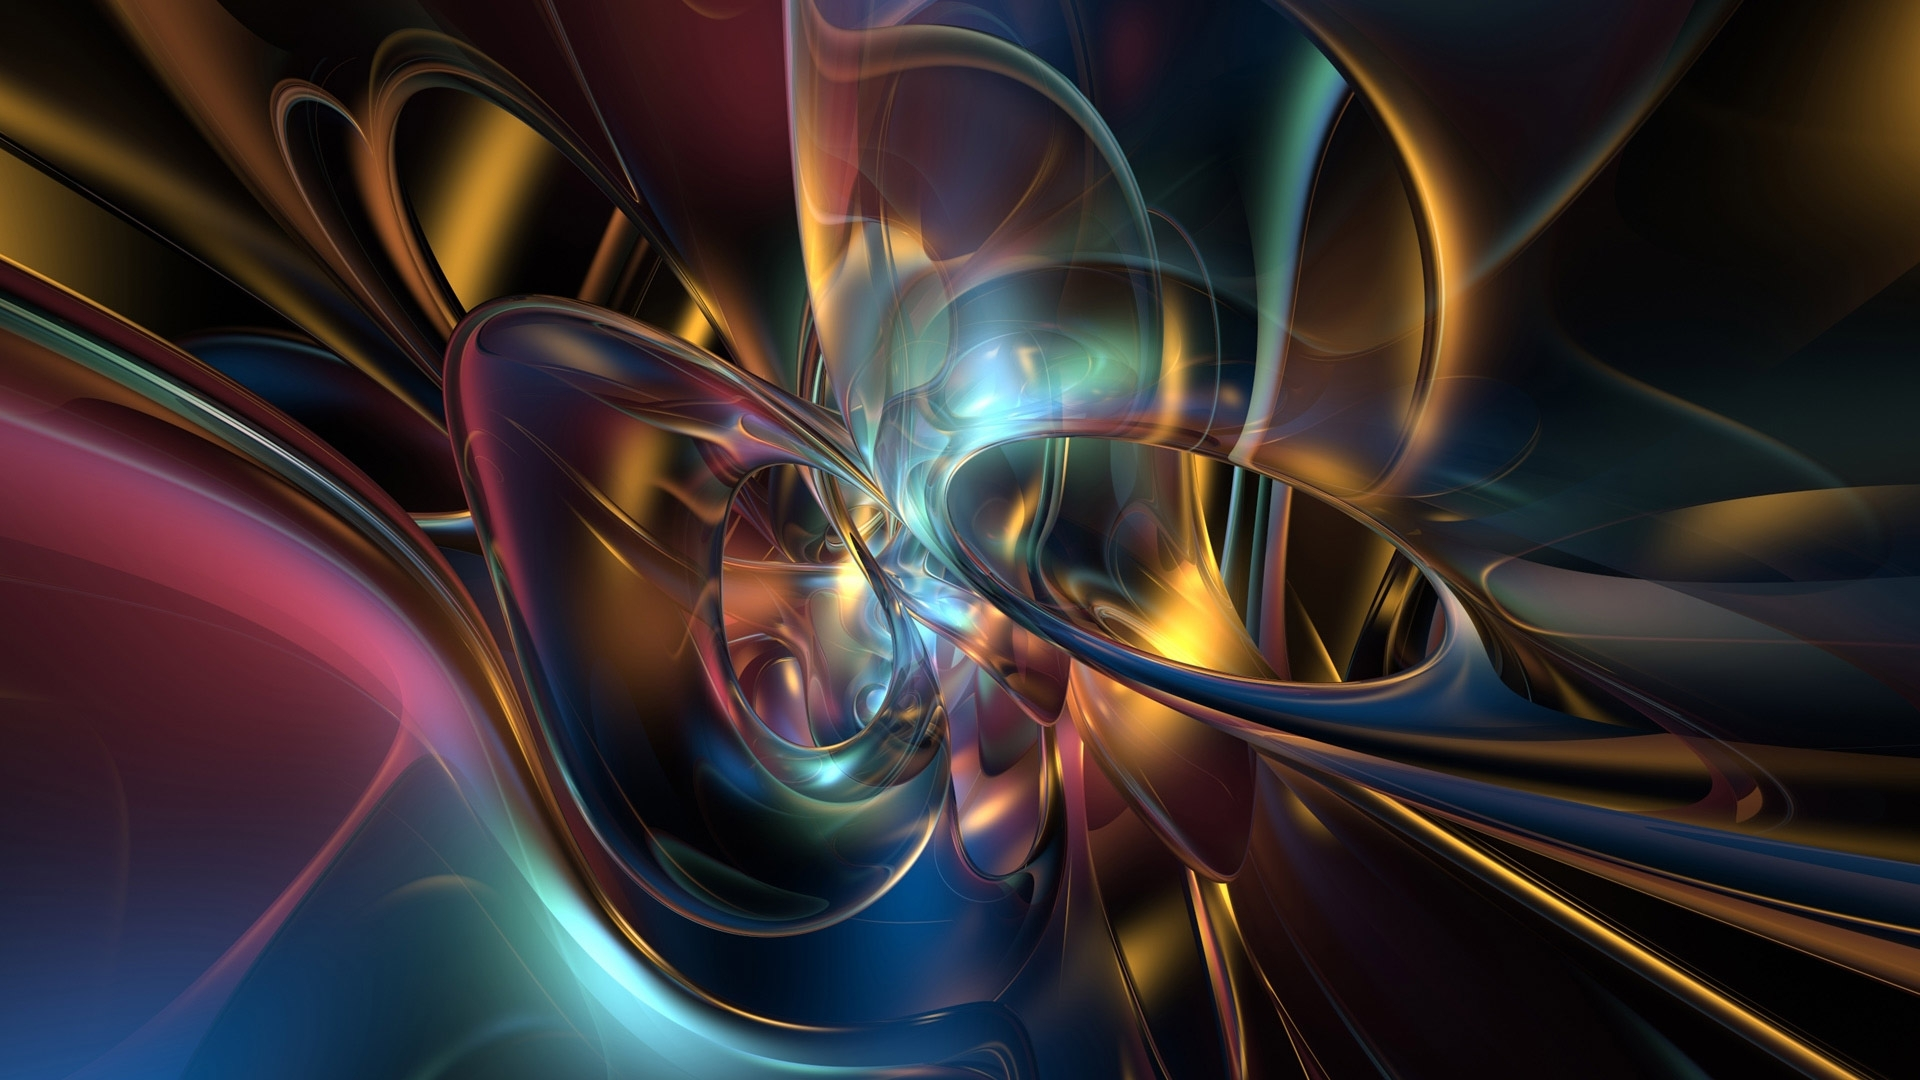 abstract design 1080p wallpapers | hd wallpapers | id #5078